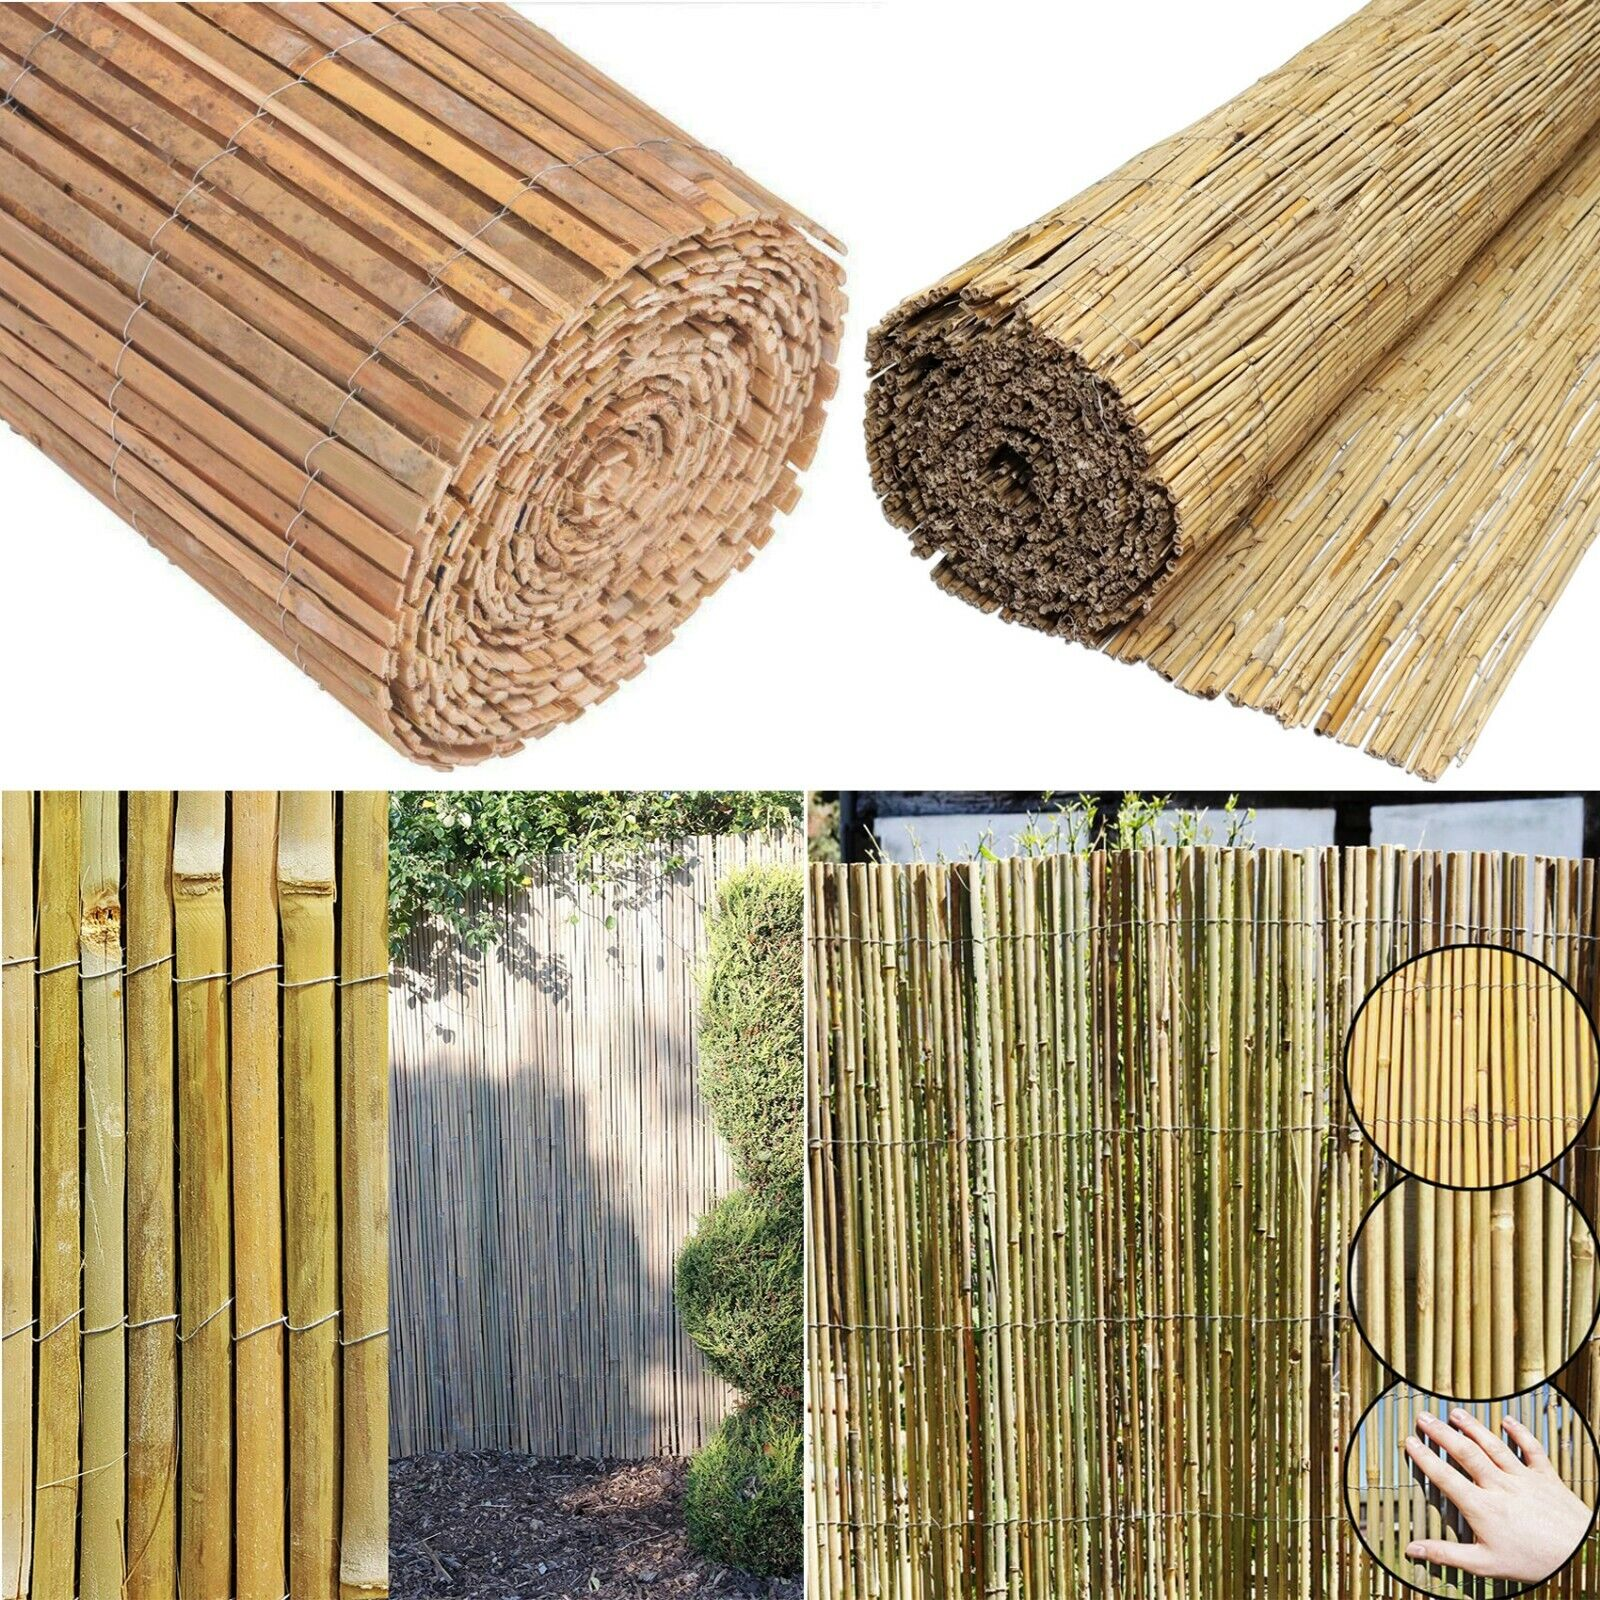 Details about Bamboo Screening Roll Screen Fencing Garden Fence Panel  Outdoor 4m Long